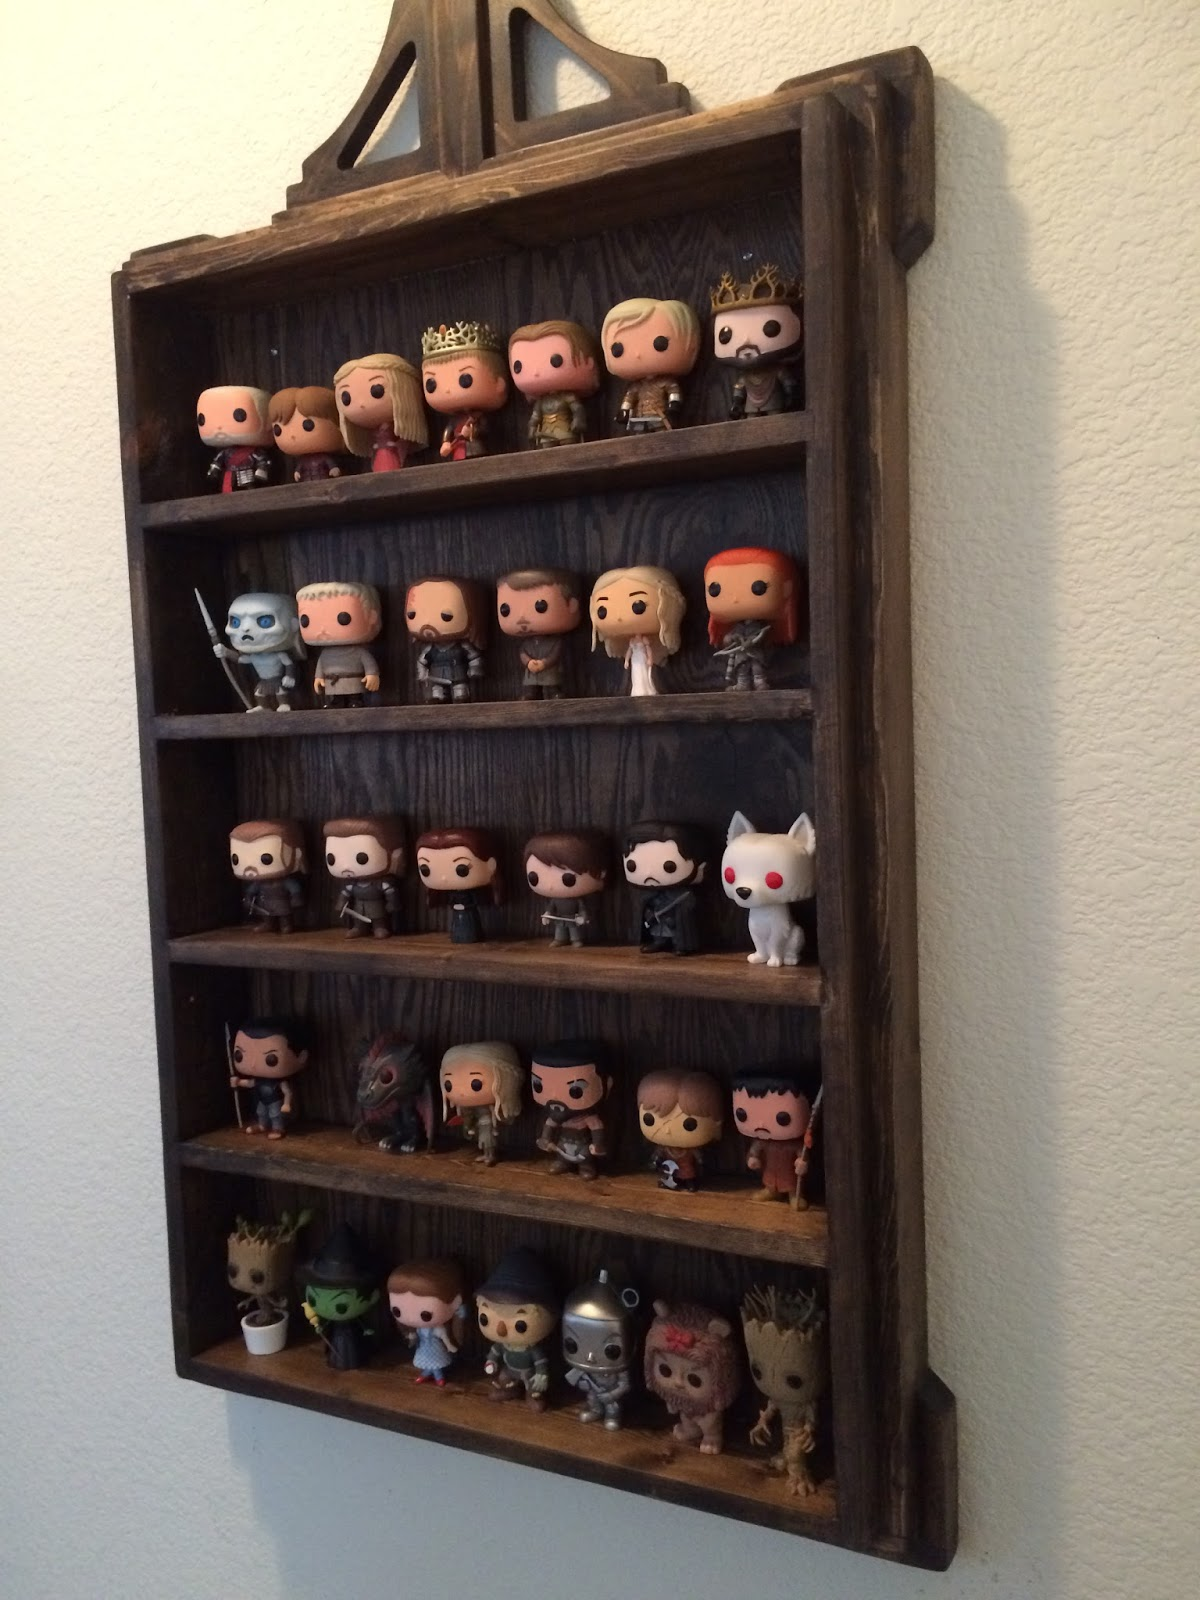 Timbo S Creations Wall Display Shelf For Funko Pop Figures